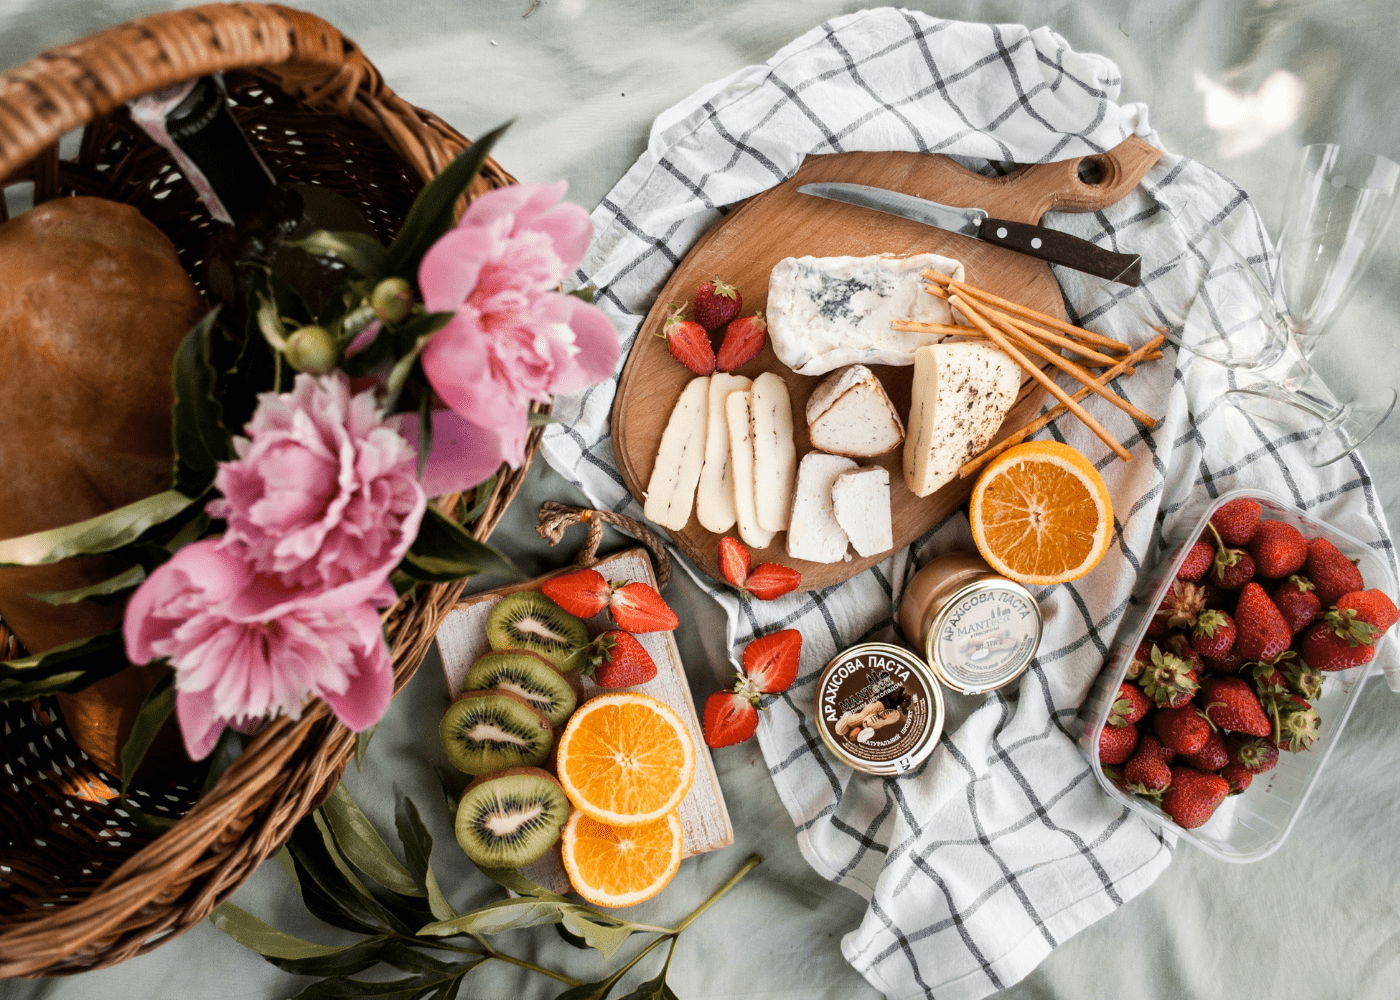 Picnic in Singapore: A pretty mat for the perfect flatlay.